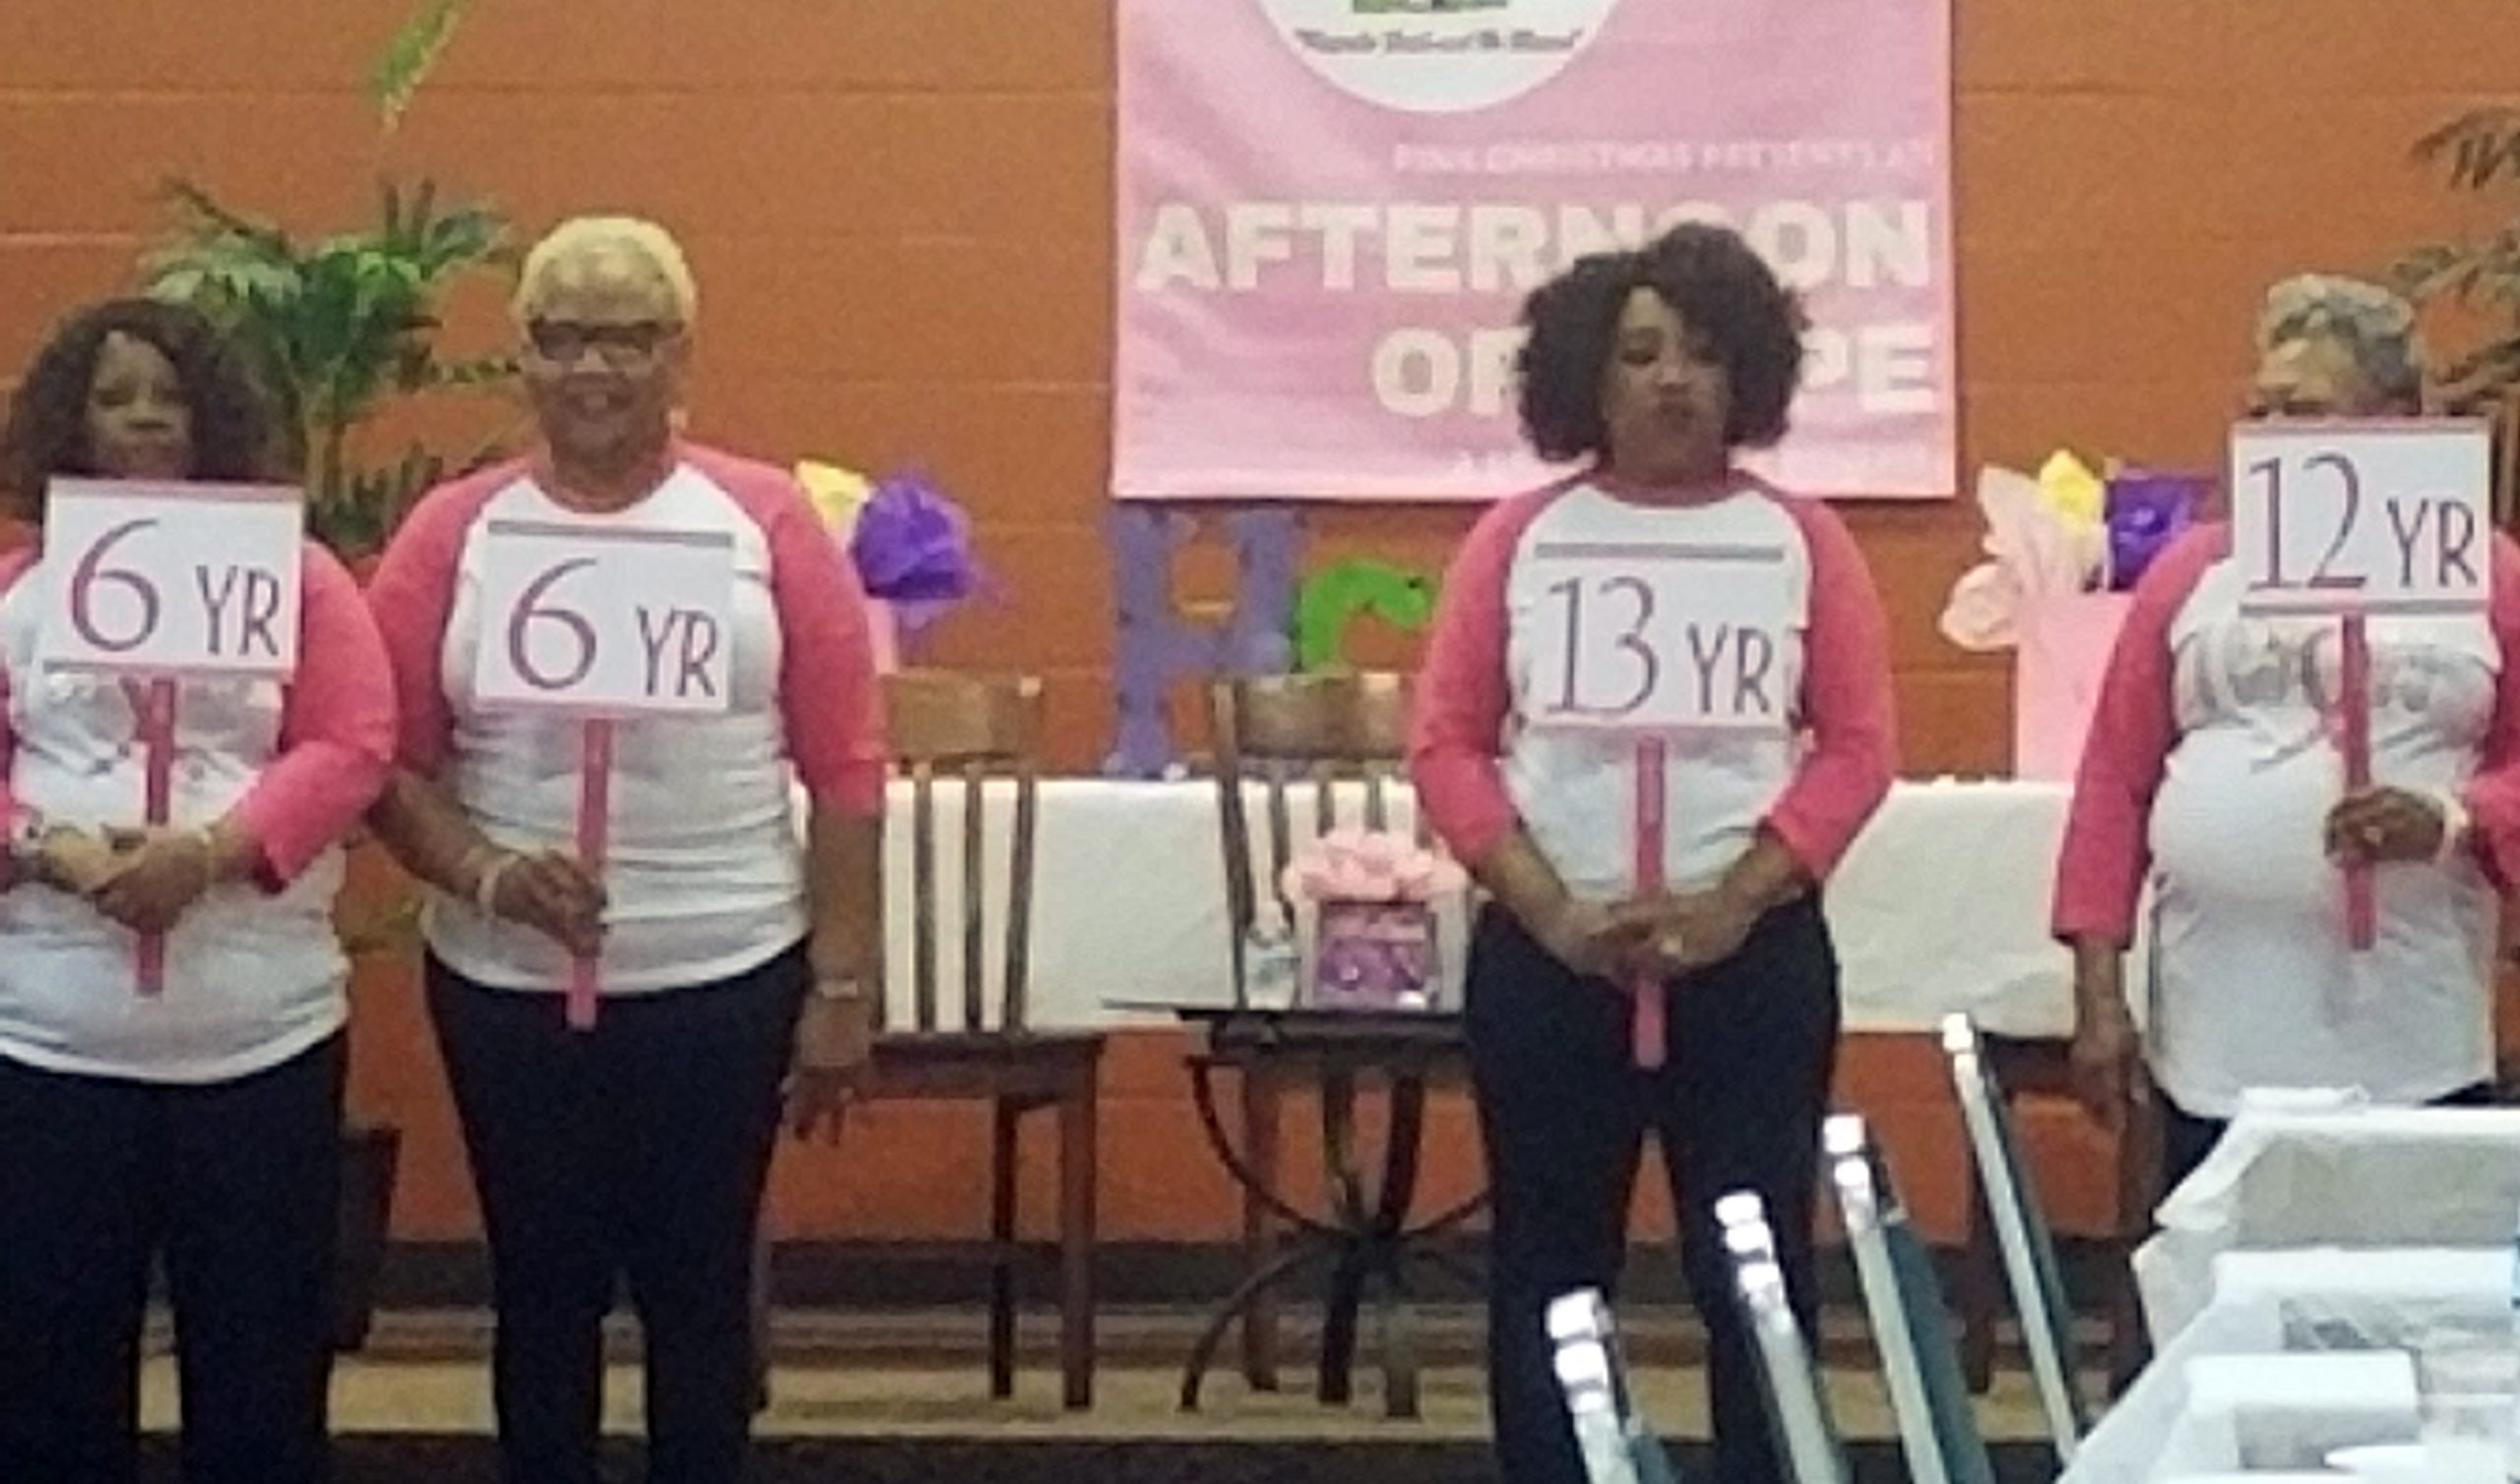 Breast Cancer Survivors at an Event